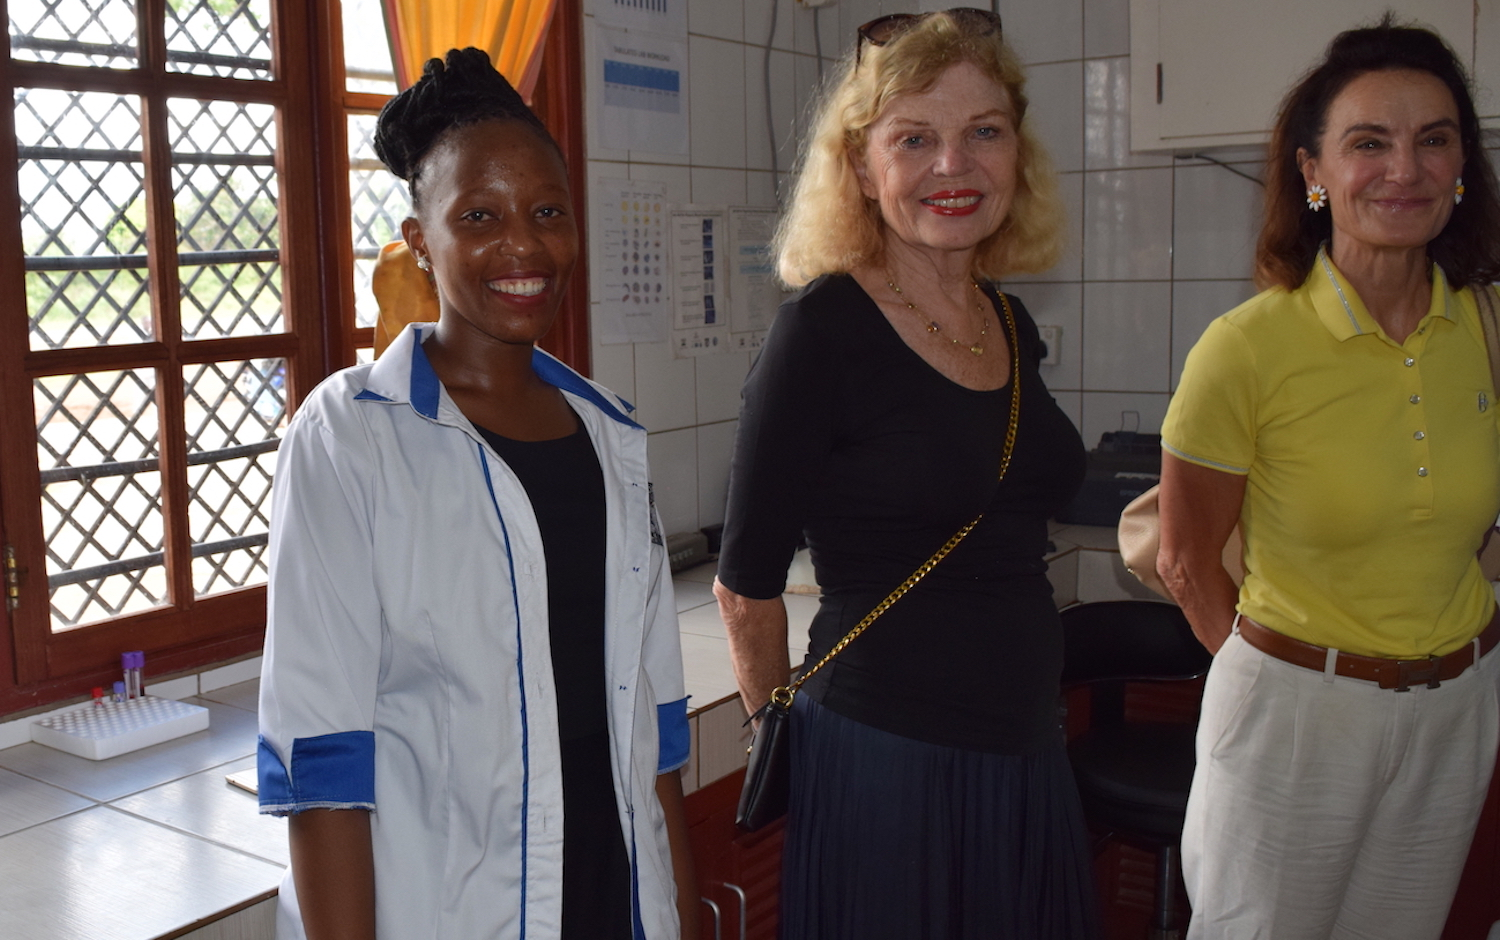 The guests visited the laboratory